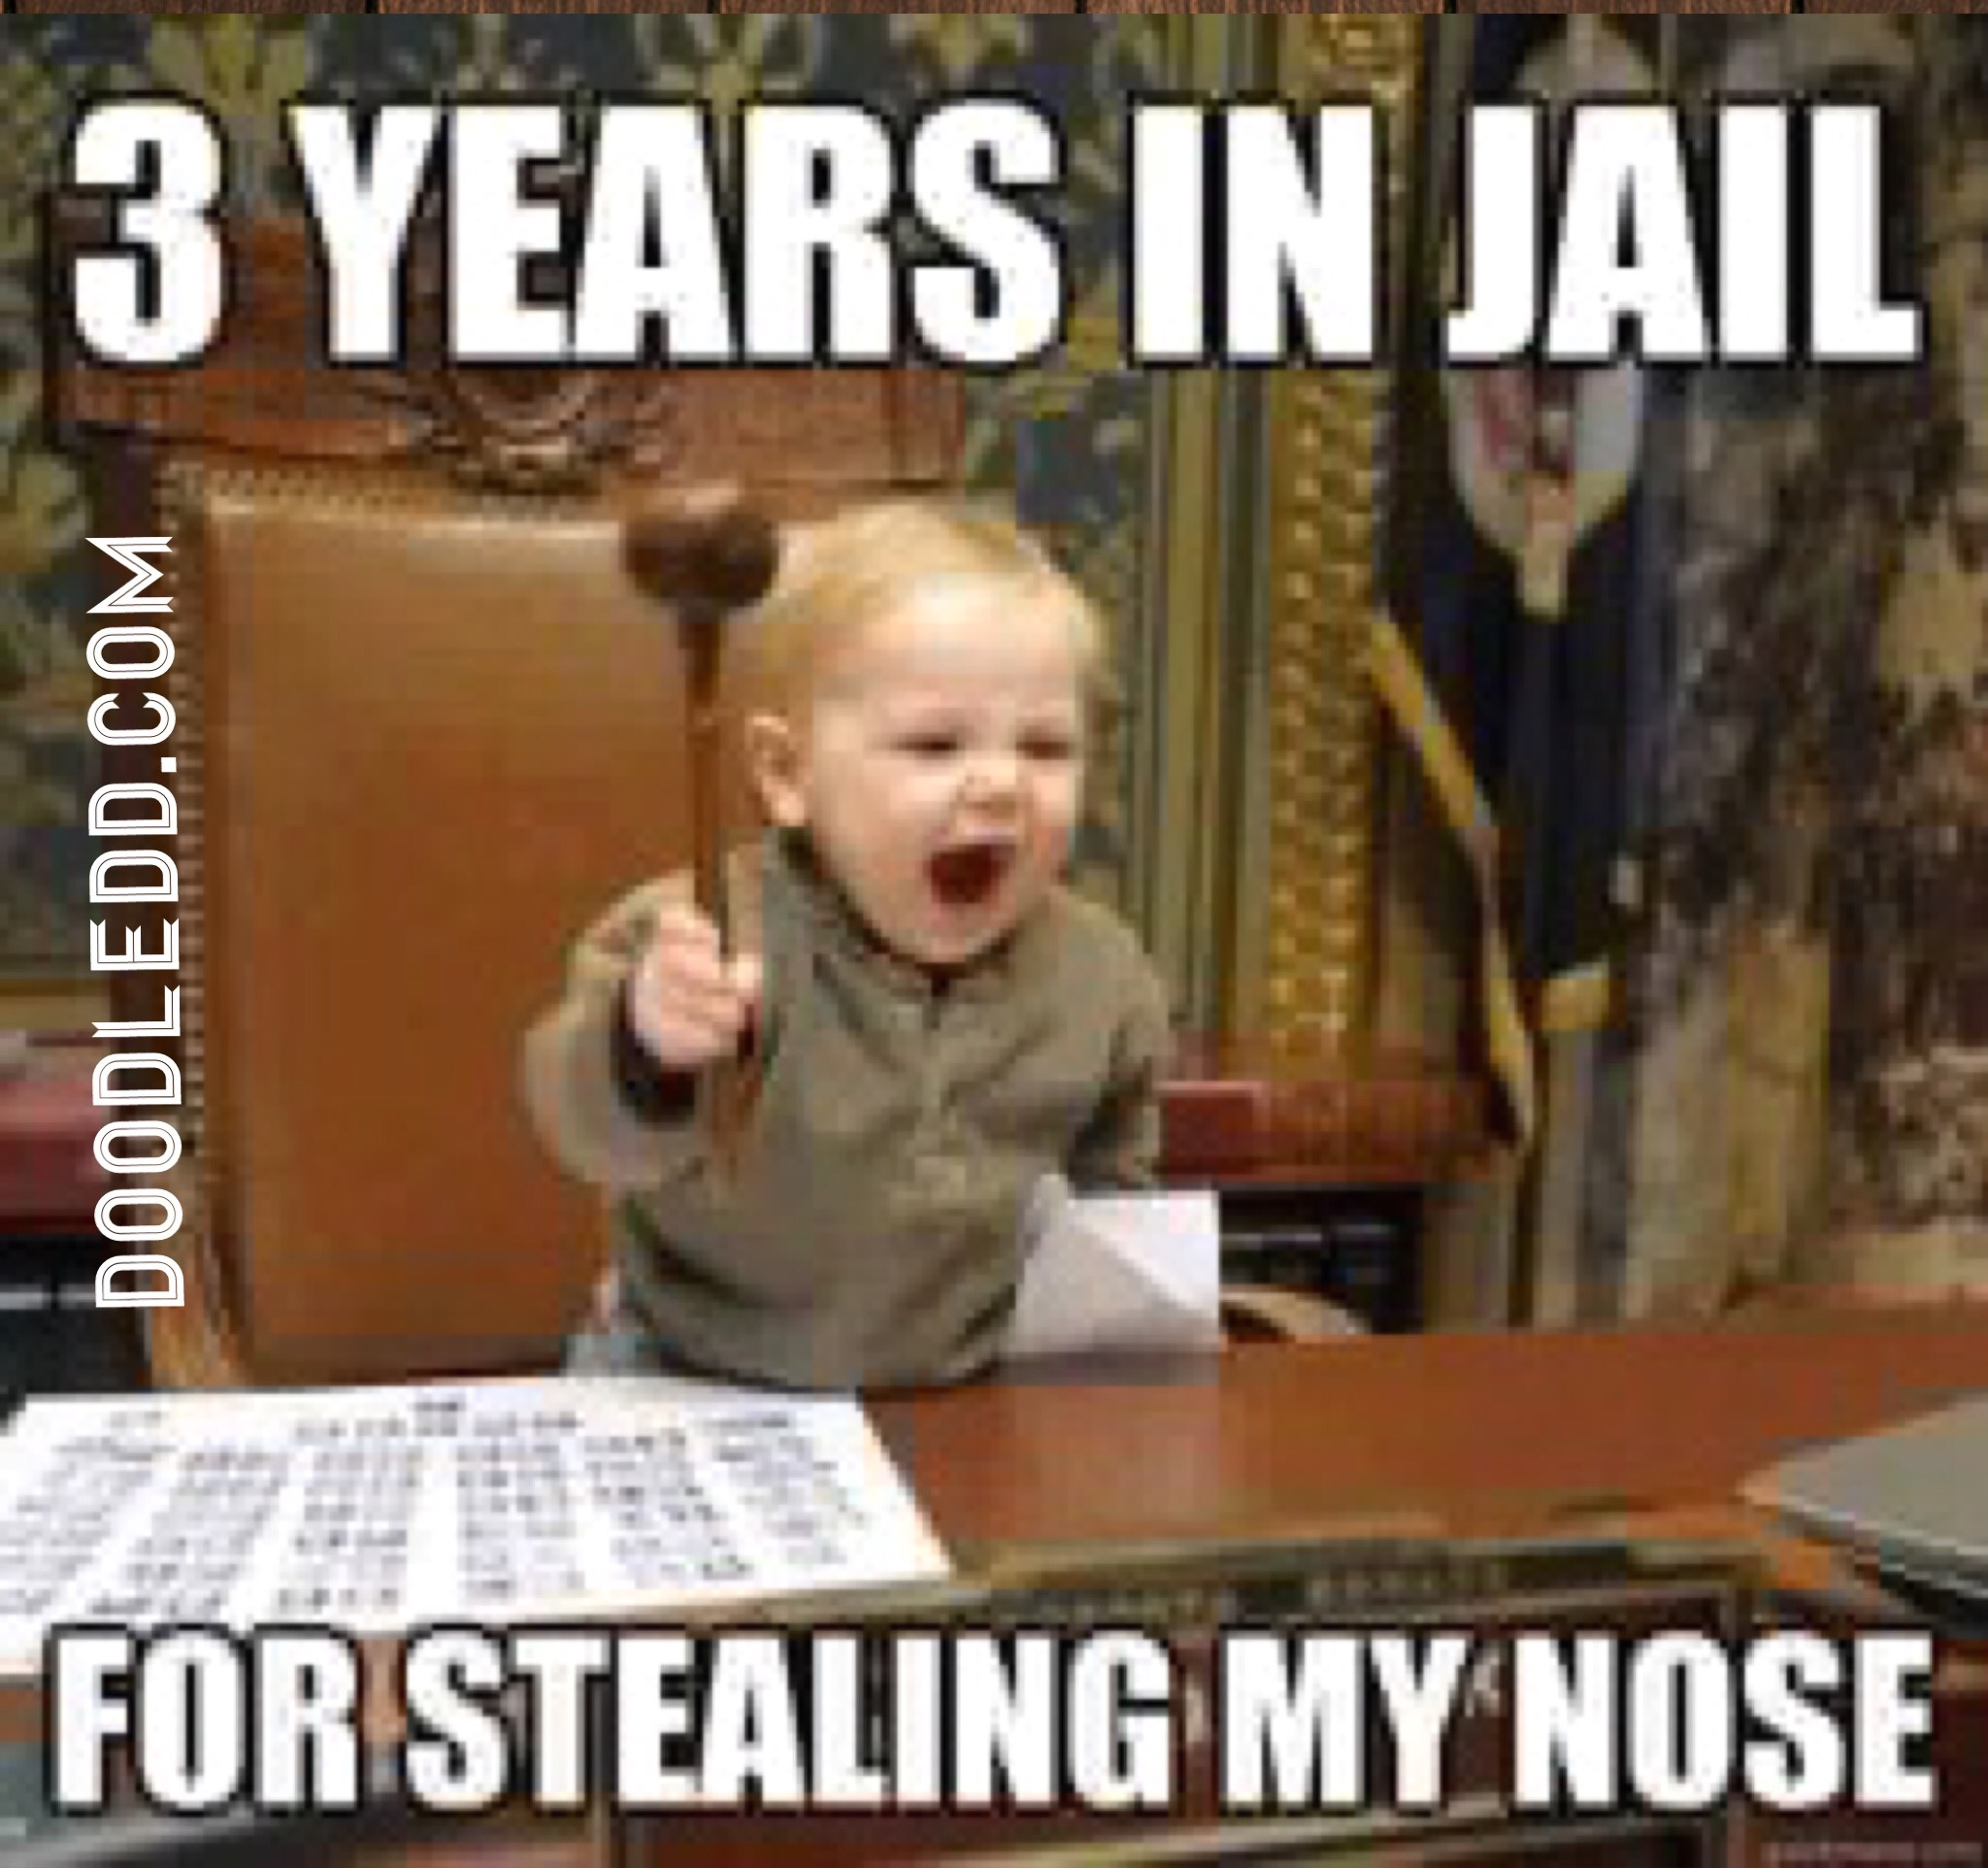 Baby with Gavel - 3 years in jail for Stealing my Nose